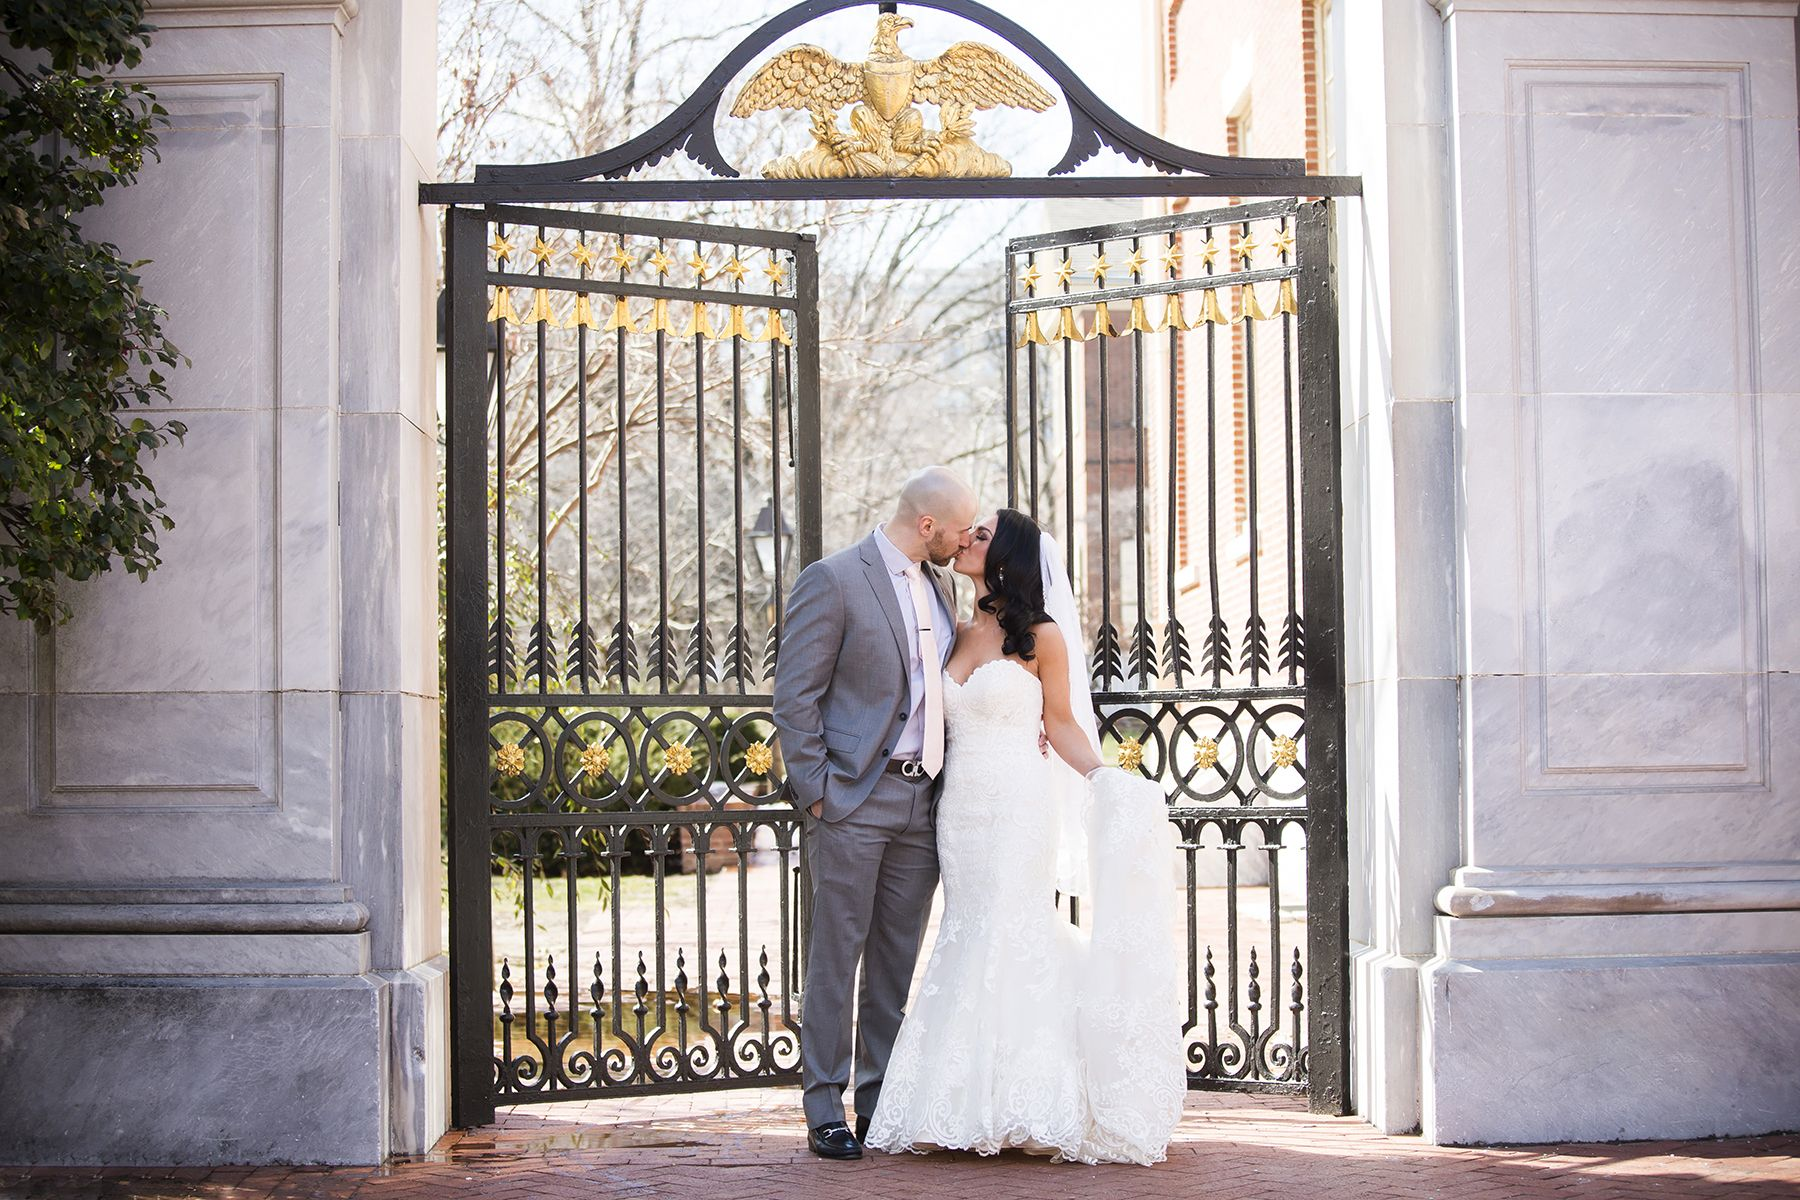 Bride and groom kiss at the first bank gate in old city philadelphia